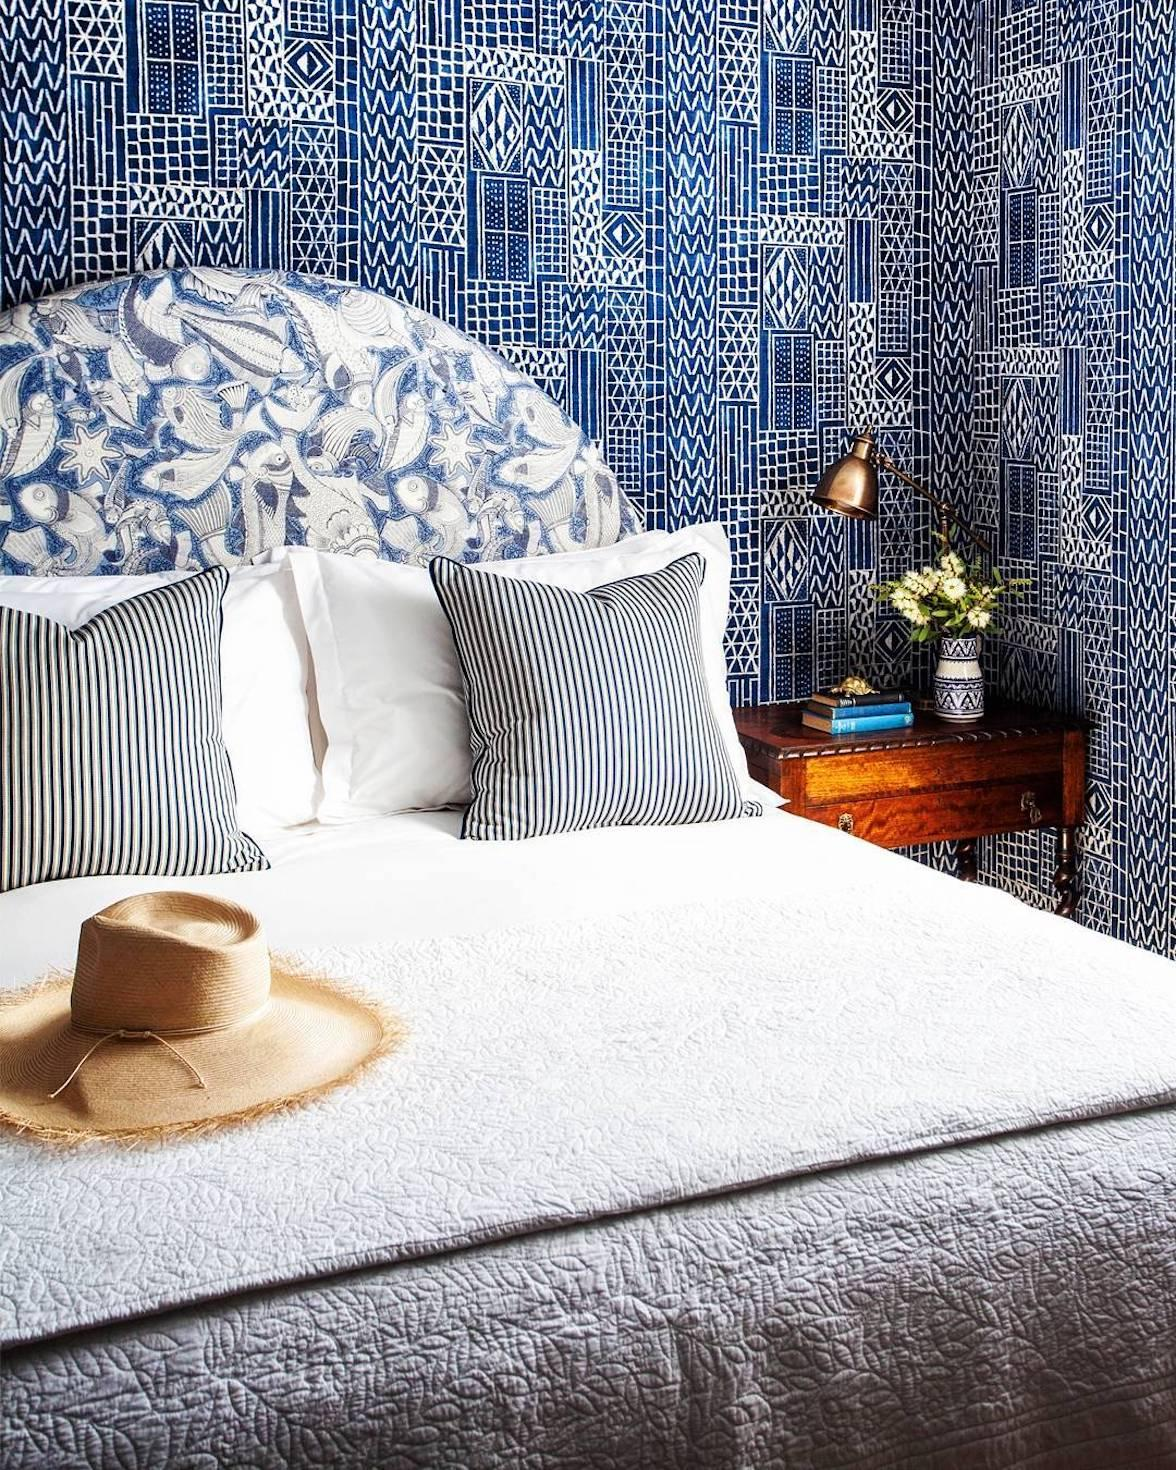 Hotels With The Most Beautiful Wallpaper